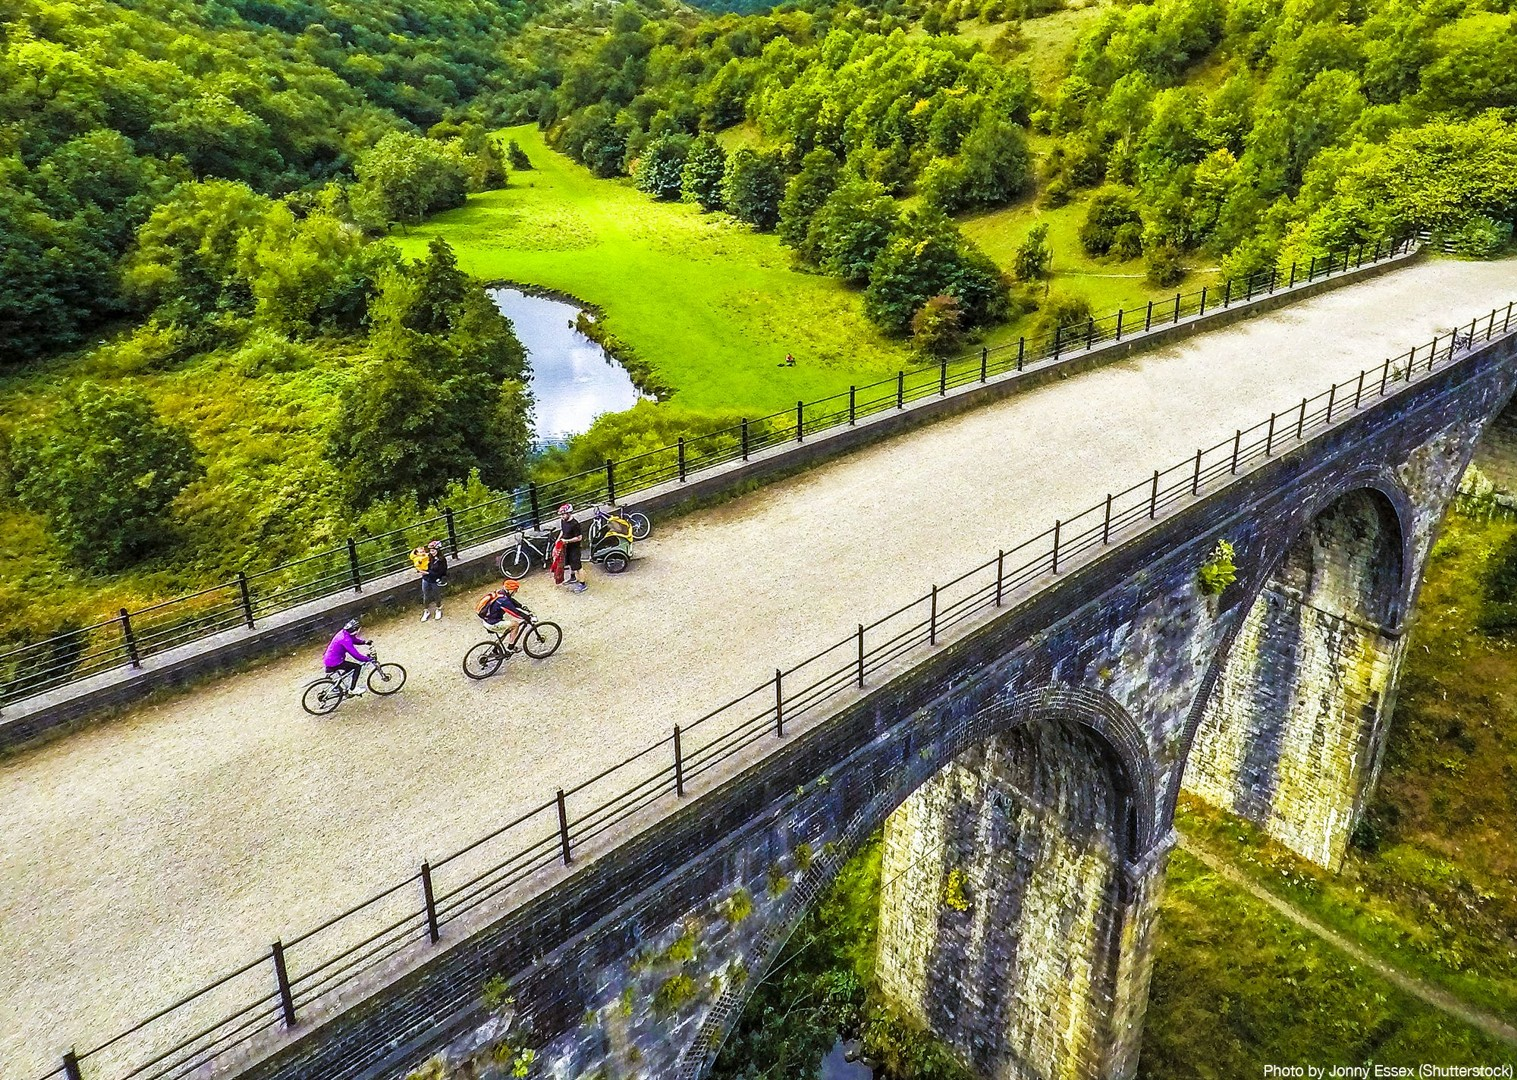 uk-derbyshire-dales-dovedale-self-guided-leisure-cycling-holday.jpg - UK - Derbyshire Dales - Dovedale - Self-Guided Leisure Cycling Holiday - Leisure Cycling